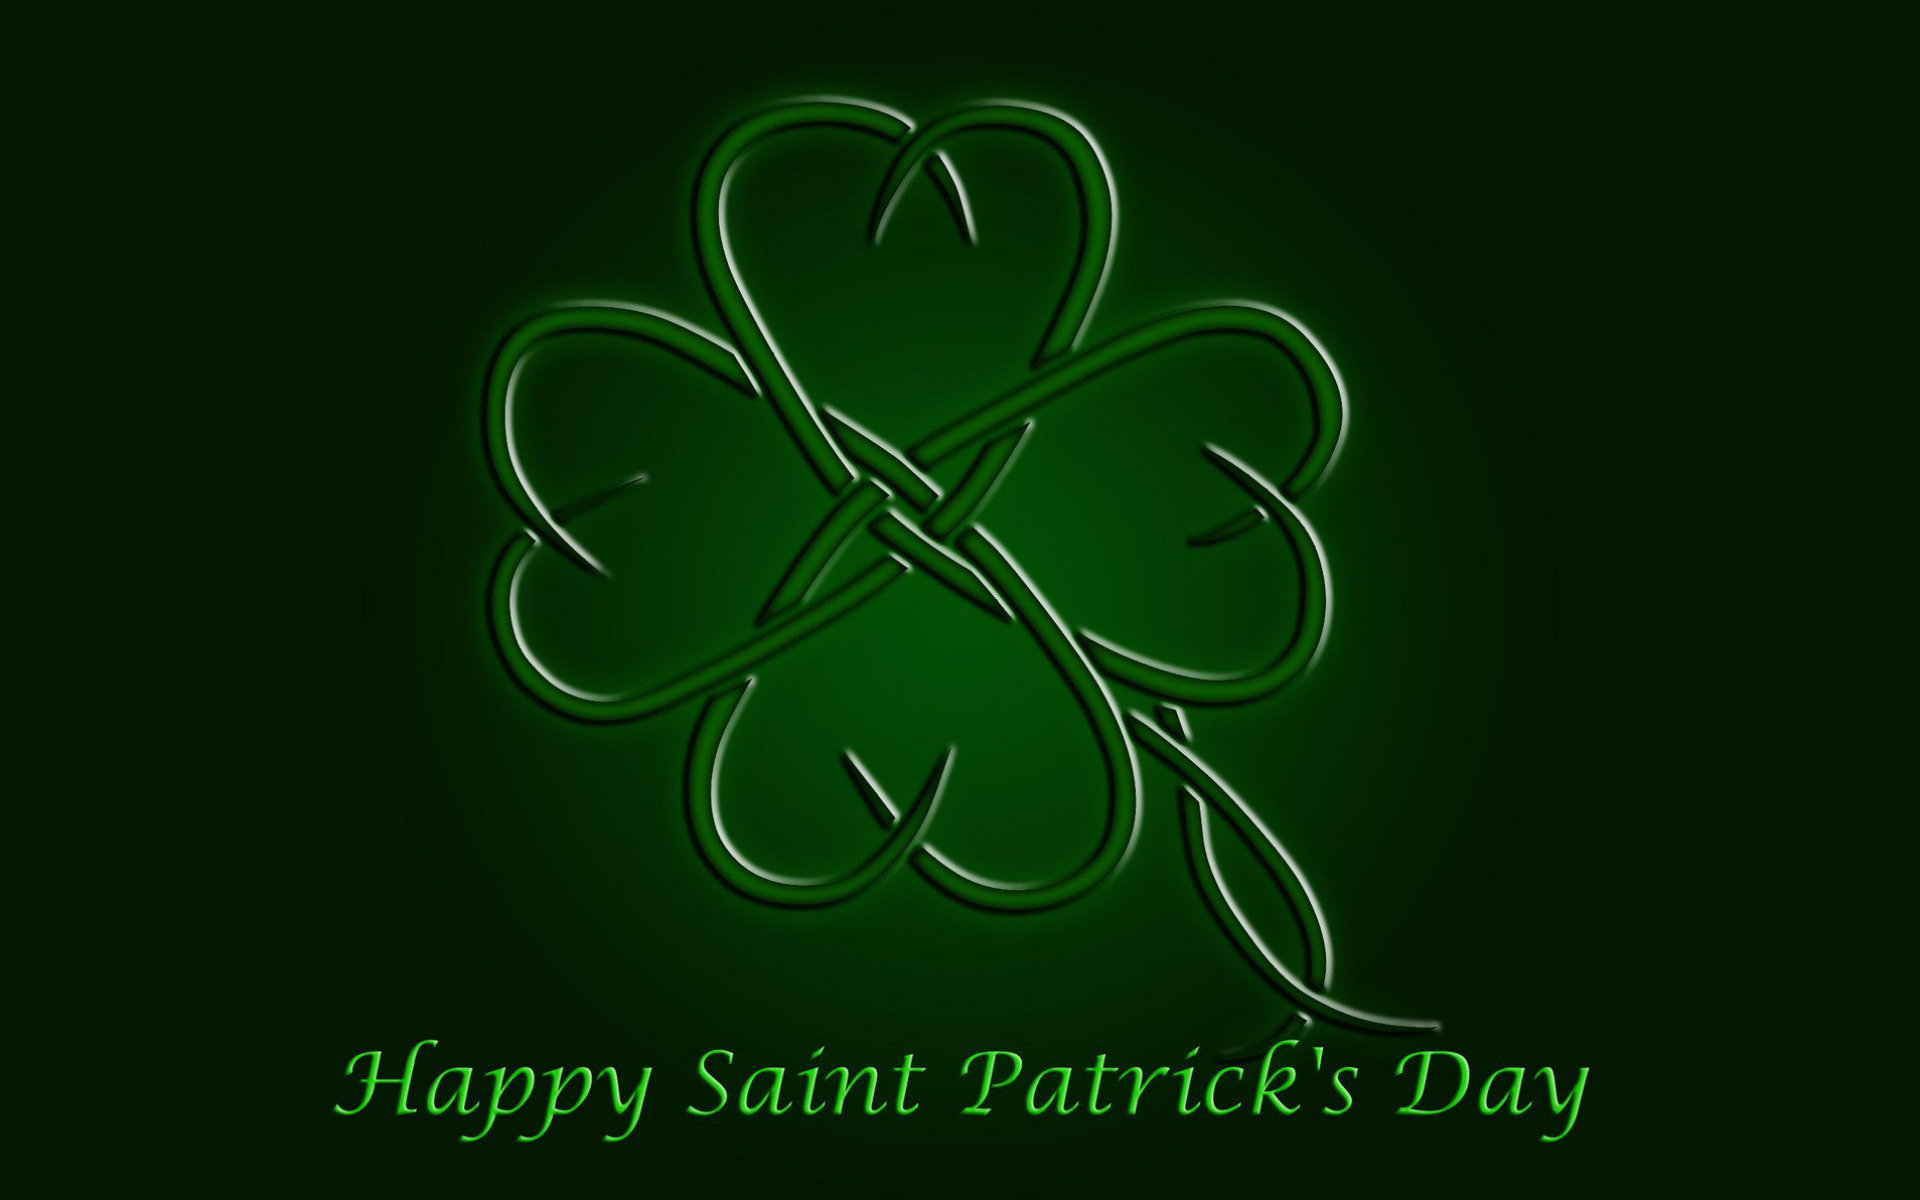 Alpha Coders Wallpaper Abyss Holiday St. Patrick's Day 219464